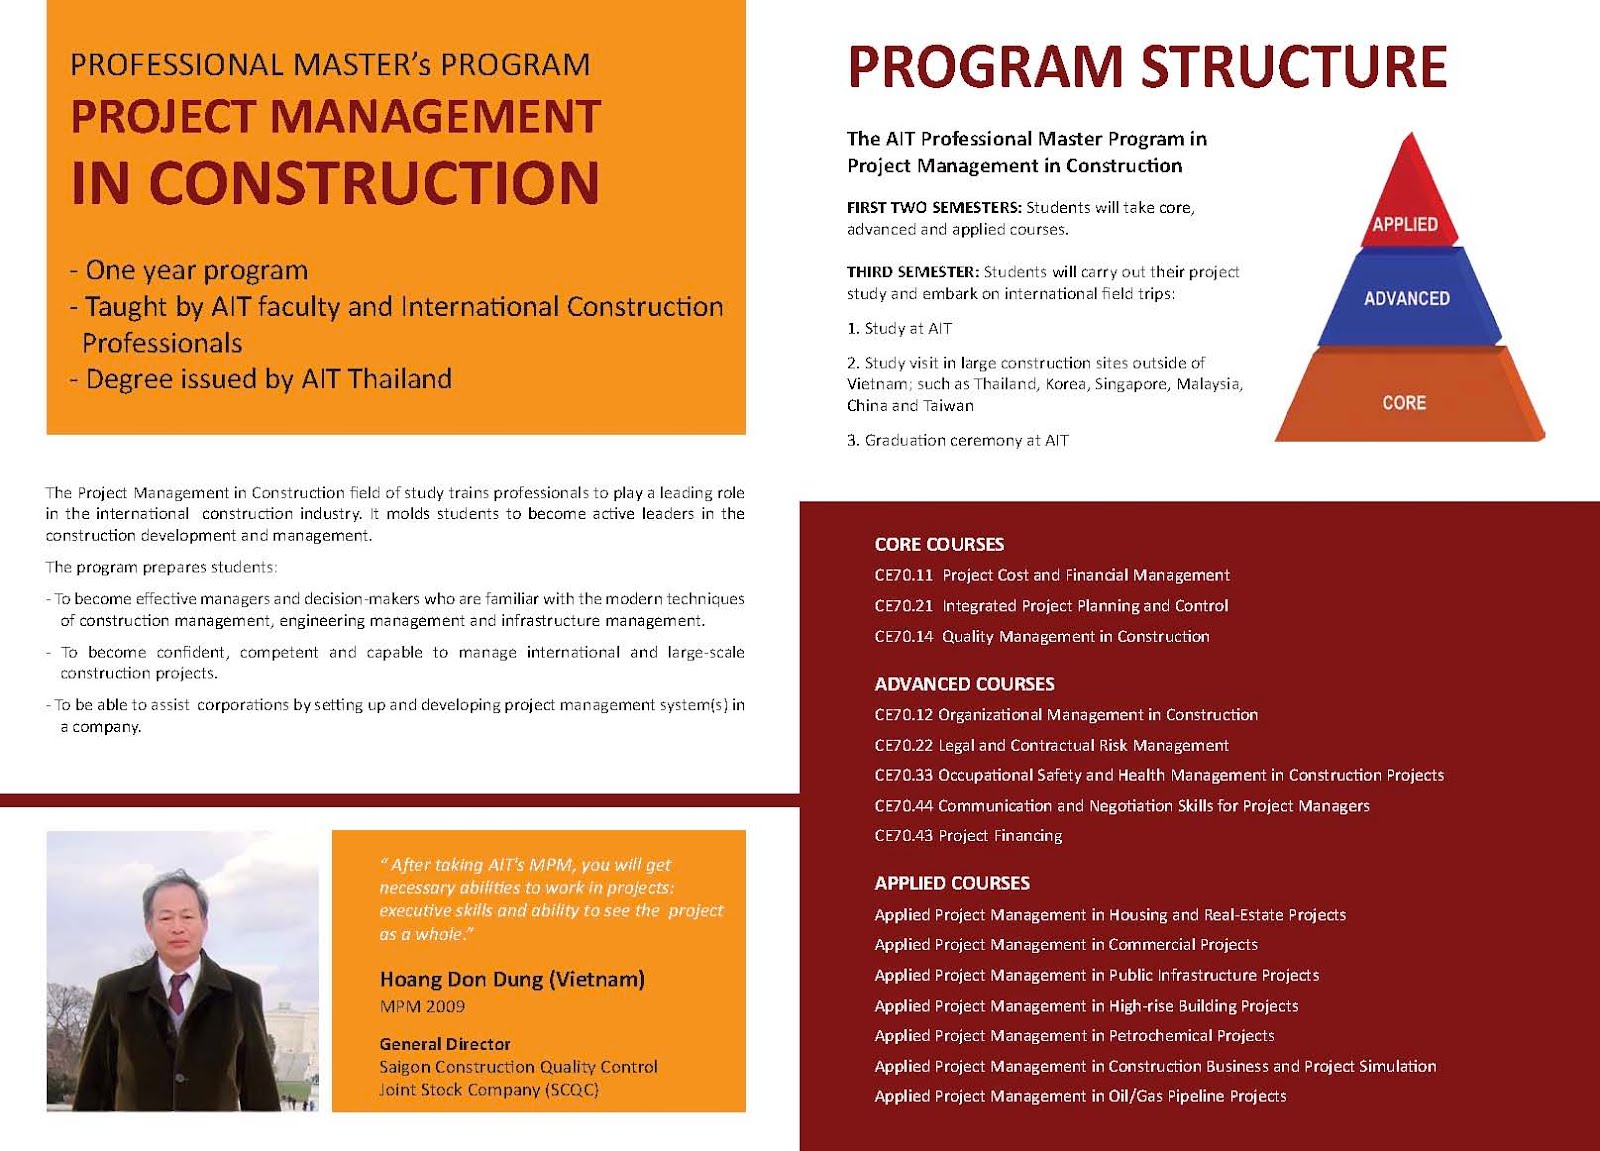 Professional project management education open for application ms tuong hcm program 091313840801 285 265 168 ngletuongaitcv and mr tuan hanoi program 0904257000 anhtuanaitcv xflitez Choice Image